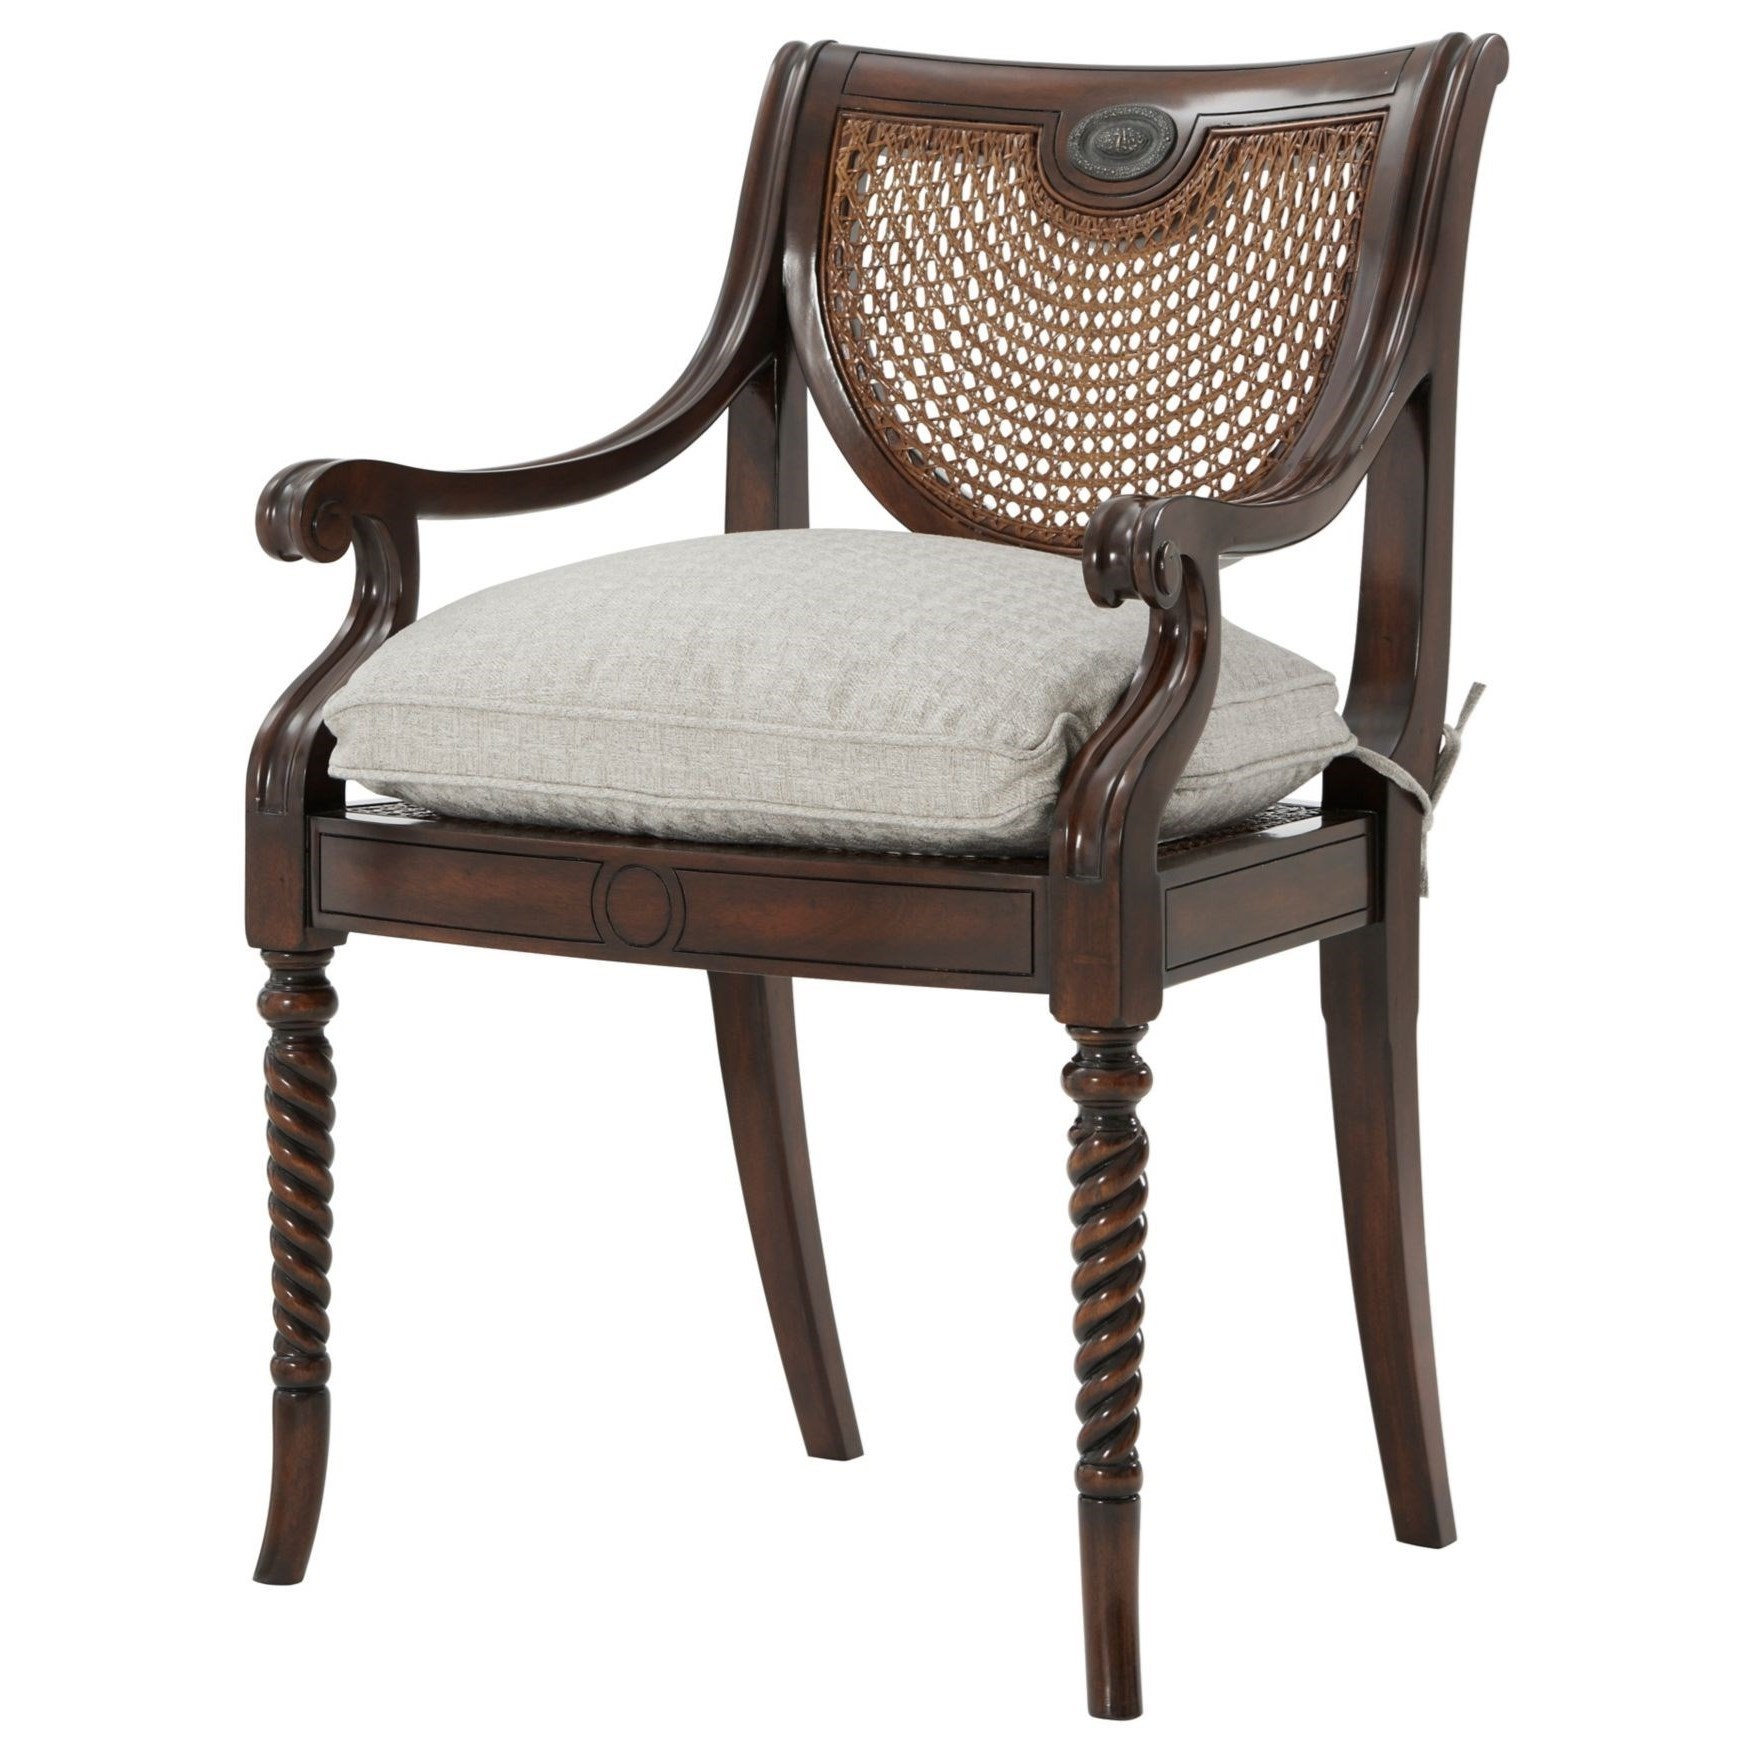 Seating Lady Emily's Favorite Armchair by Theodore Alexander at Baer's Furniture